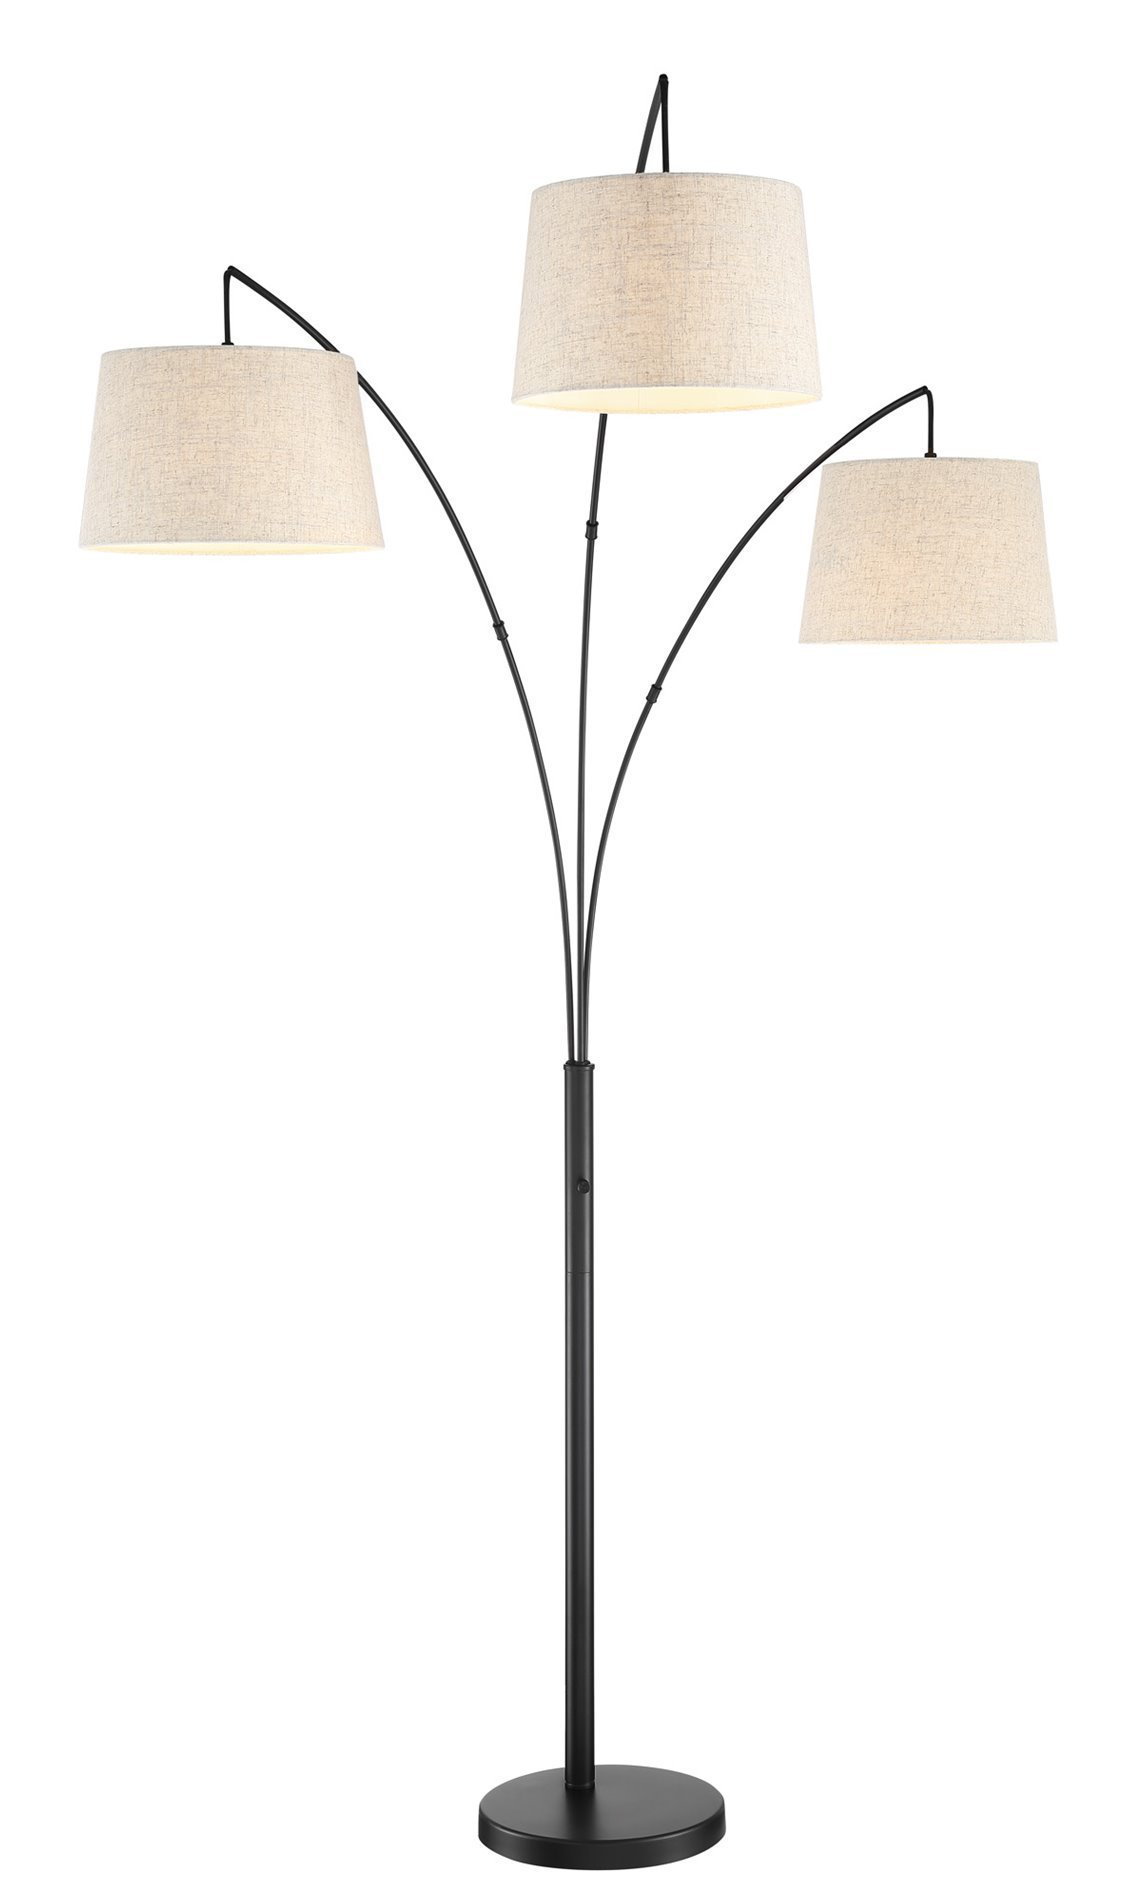 Kira Home Akira 78.5'' Modern 3-Light Arc Floor Lamp with 3-Way Switch, Oatmeal Shades + Oil Rubbed Bronze Finish by Kira Home